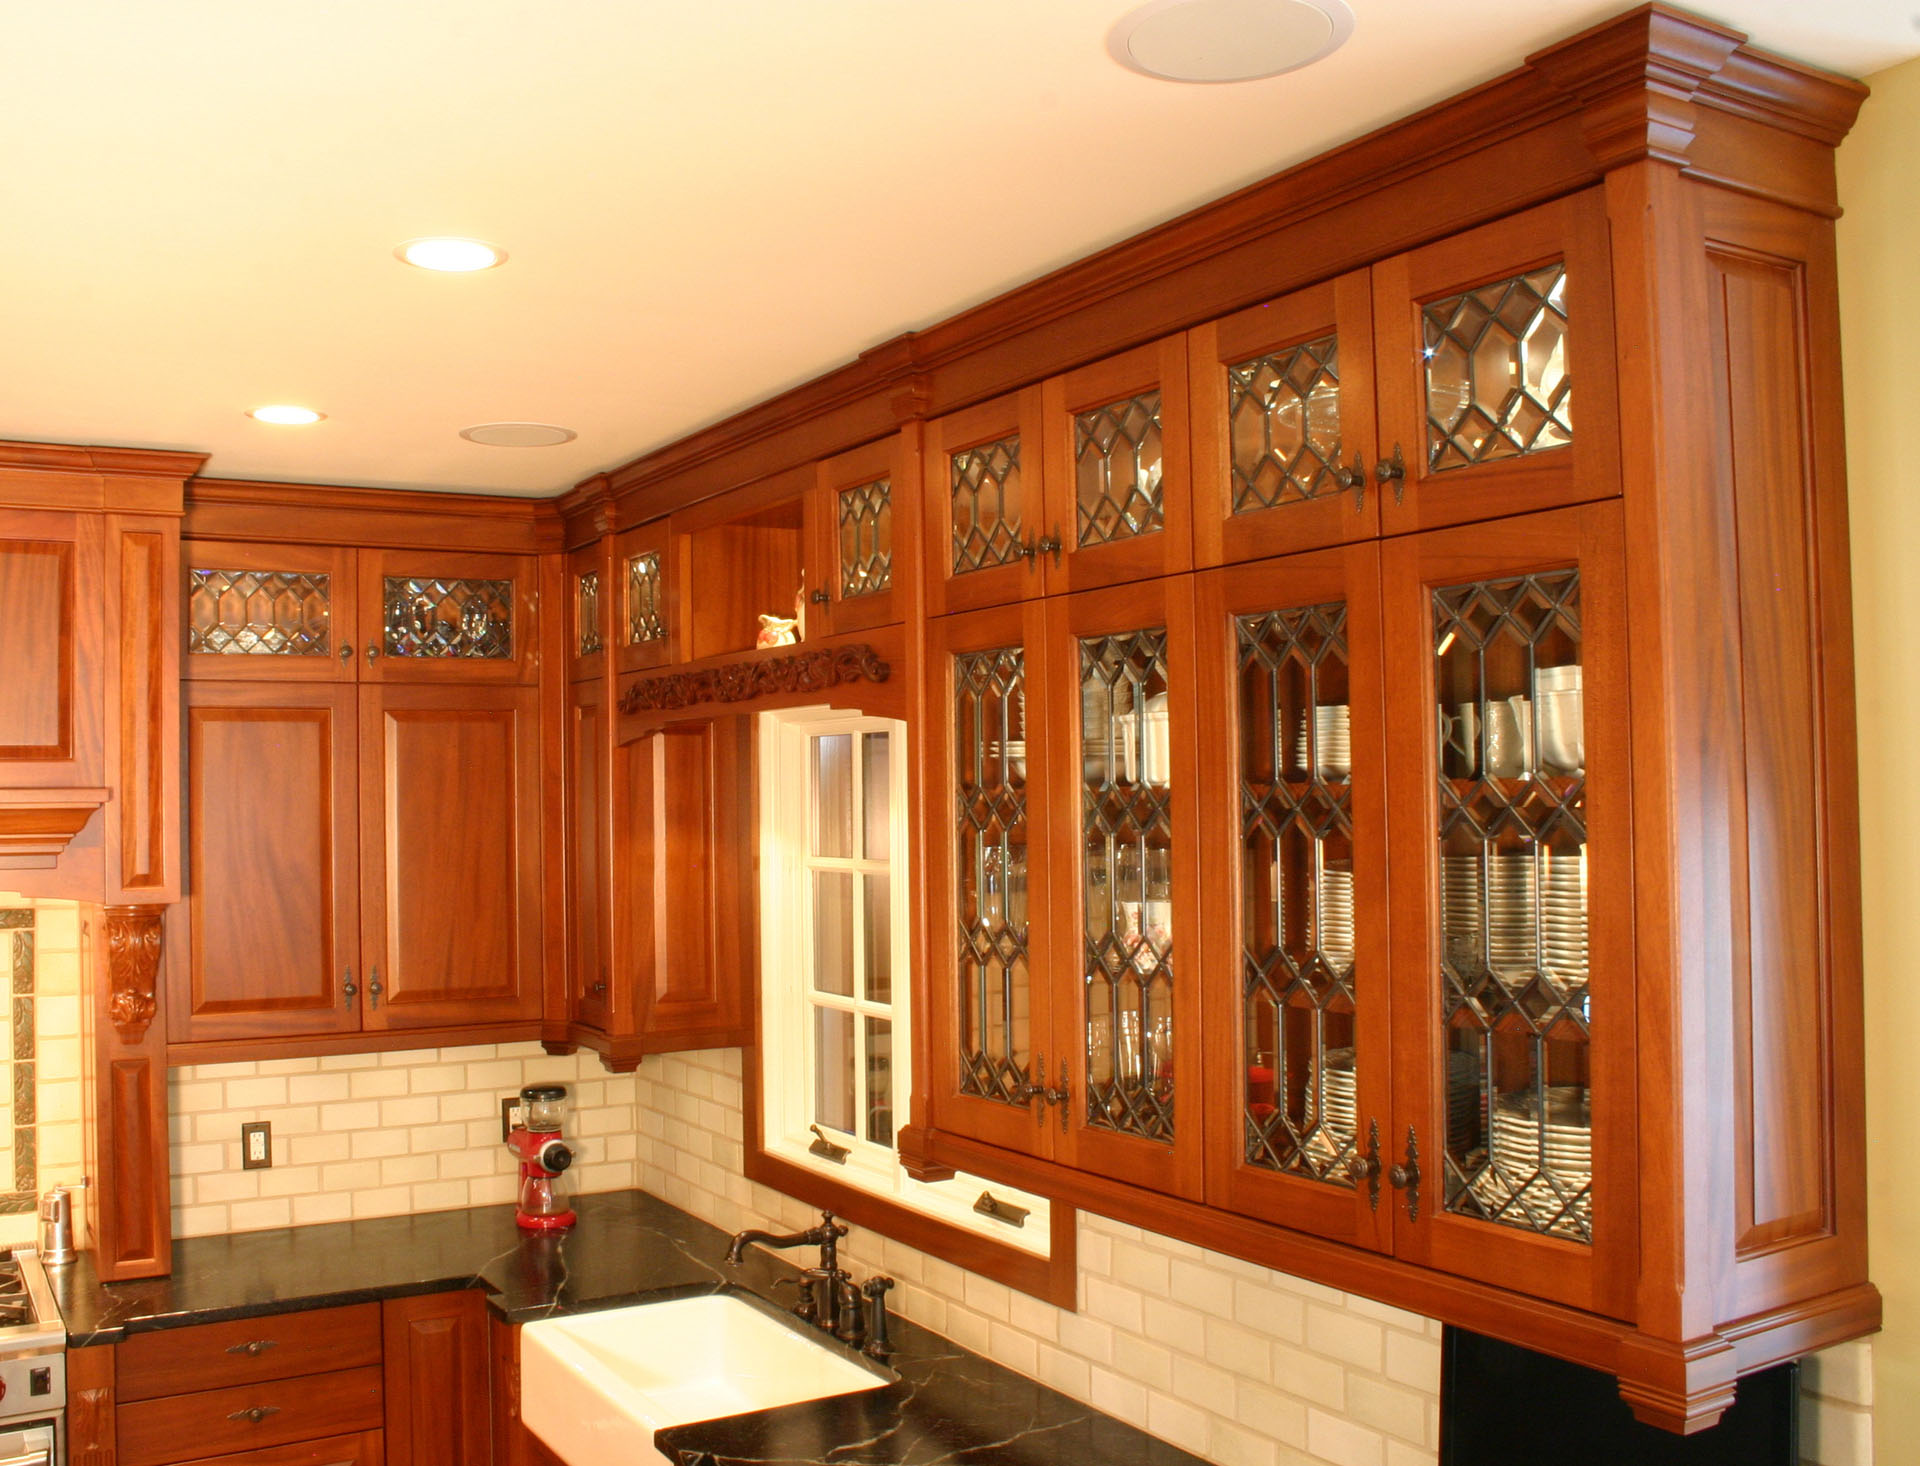 Woodfield Art Nnouveau kitchen mahogany